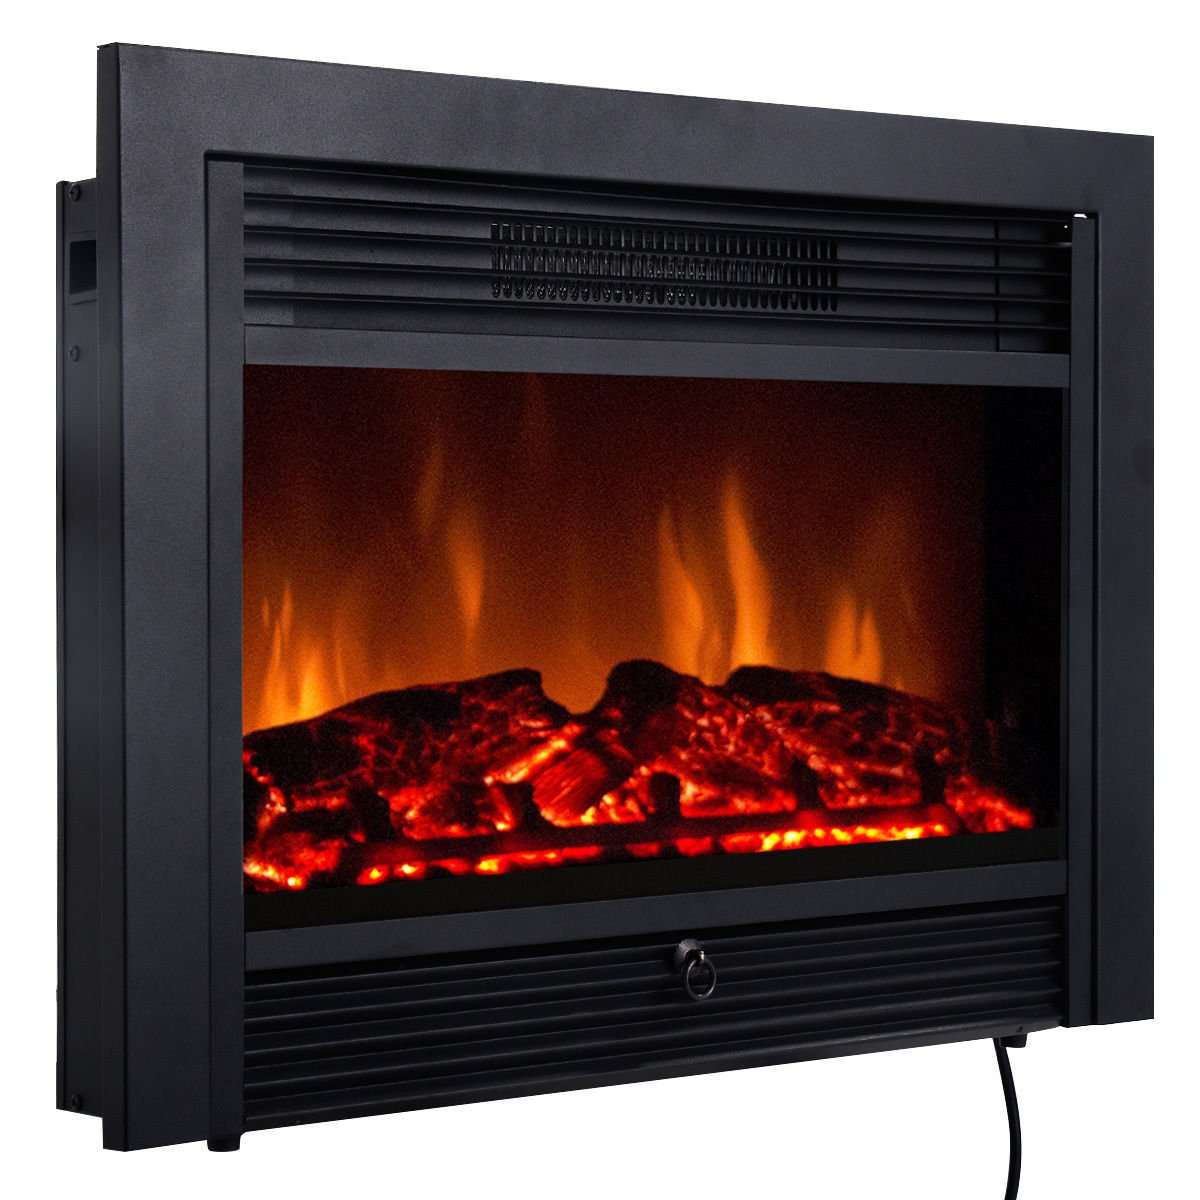 Giantex 28.5'' Electric Fireplace Insert with Heater Glass View Log Flame with Remote Control Home by Giantex